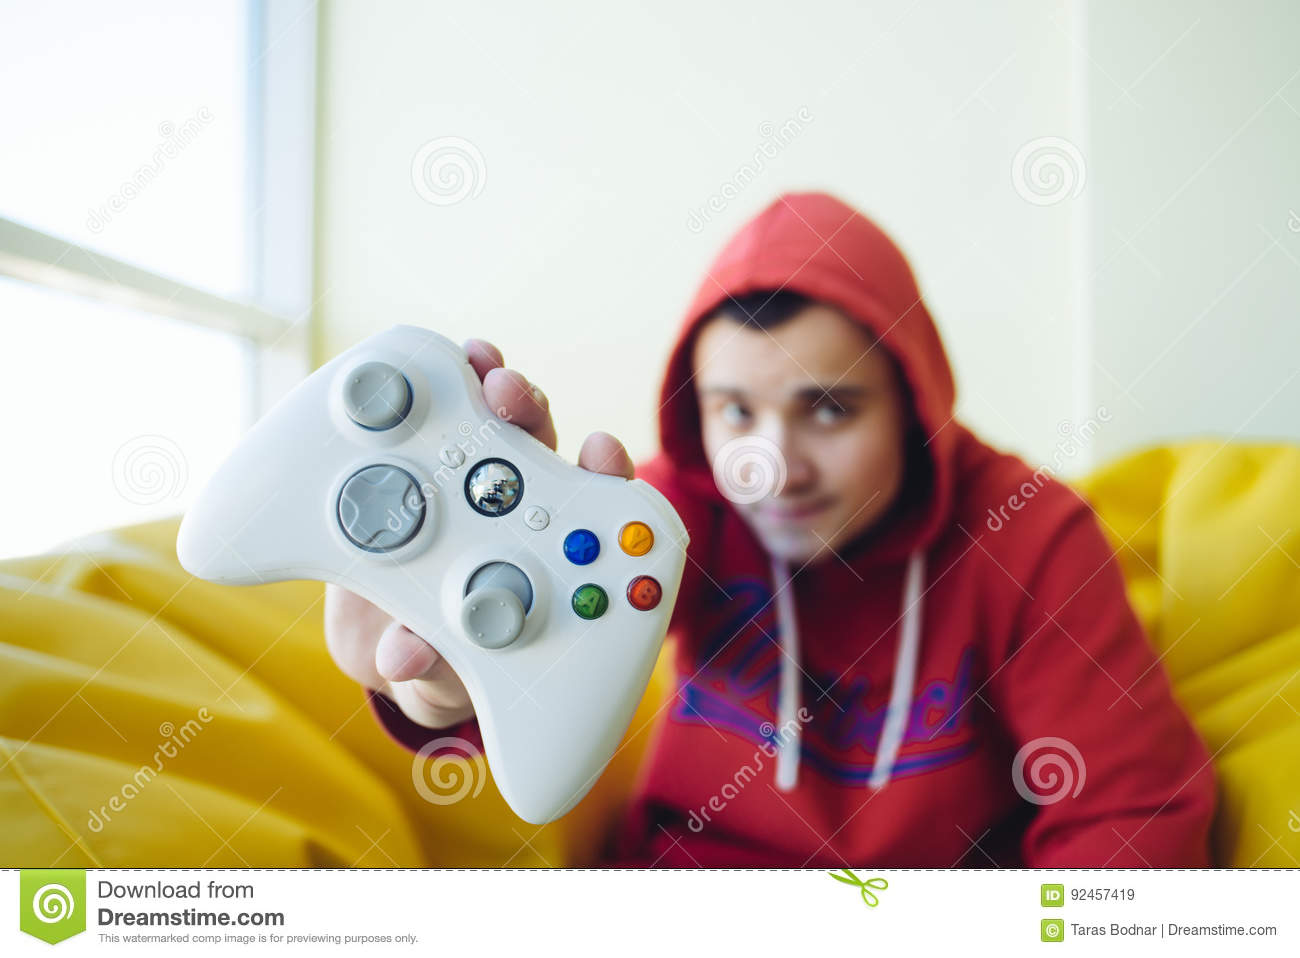 A young gamer shows a white gamer gaming joystick close up. Concept Video Games.